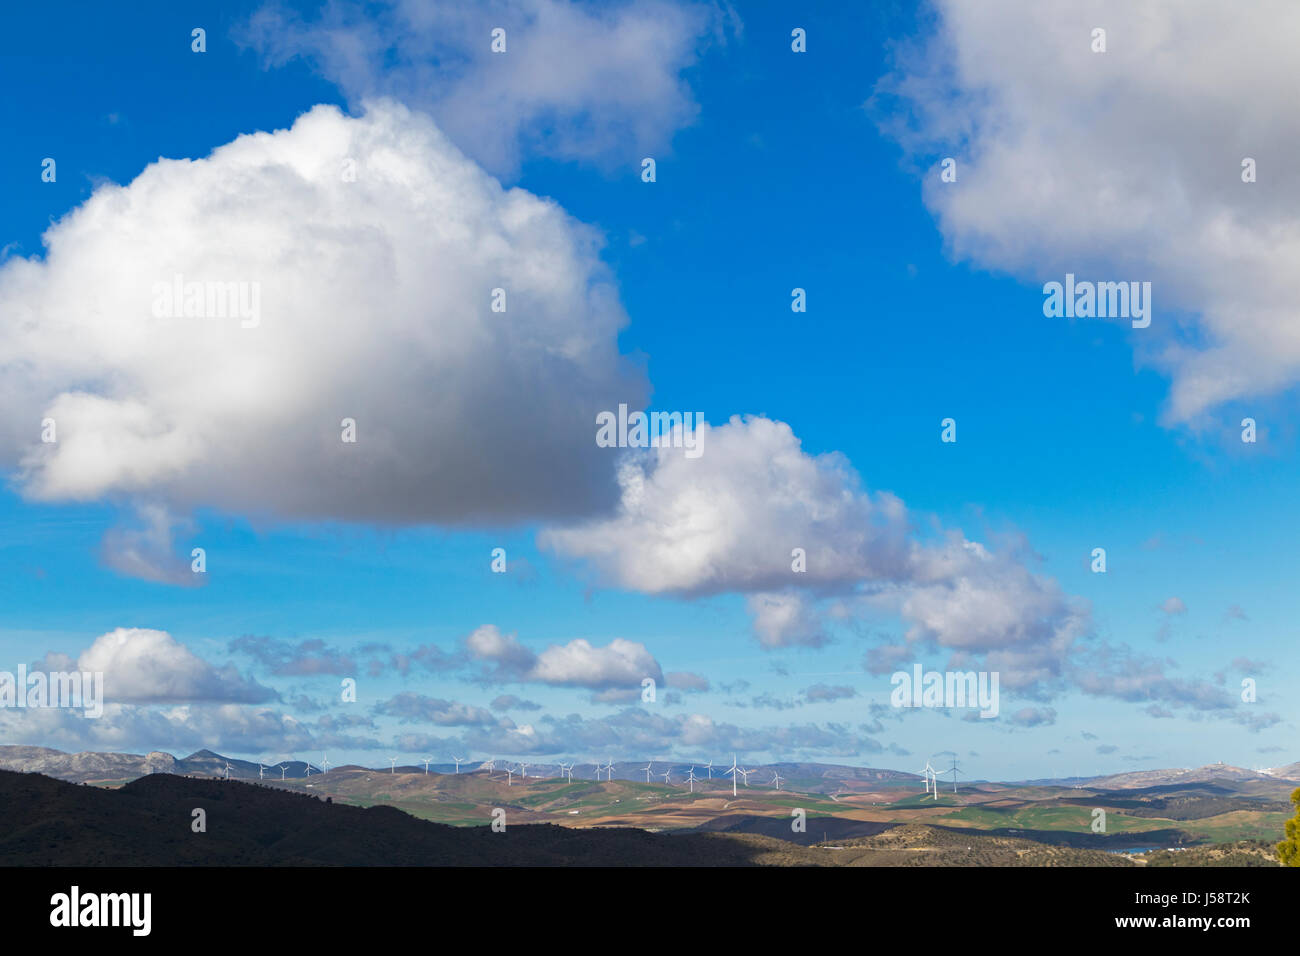 Windmills producing electrical energy near Ardales, Malaga Province, Andalusia, southern Spain. - Stock Image